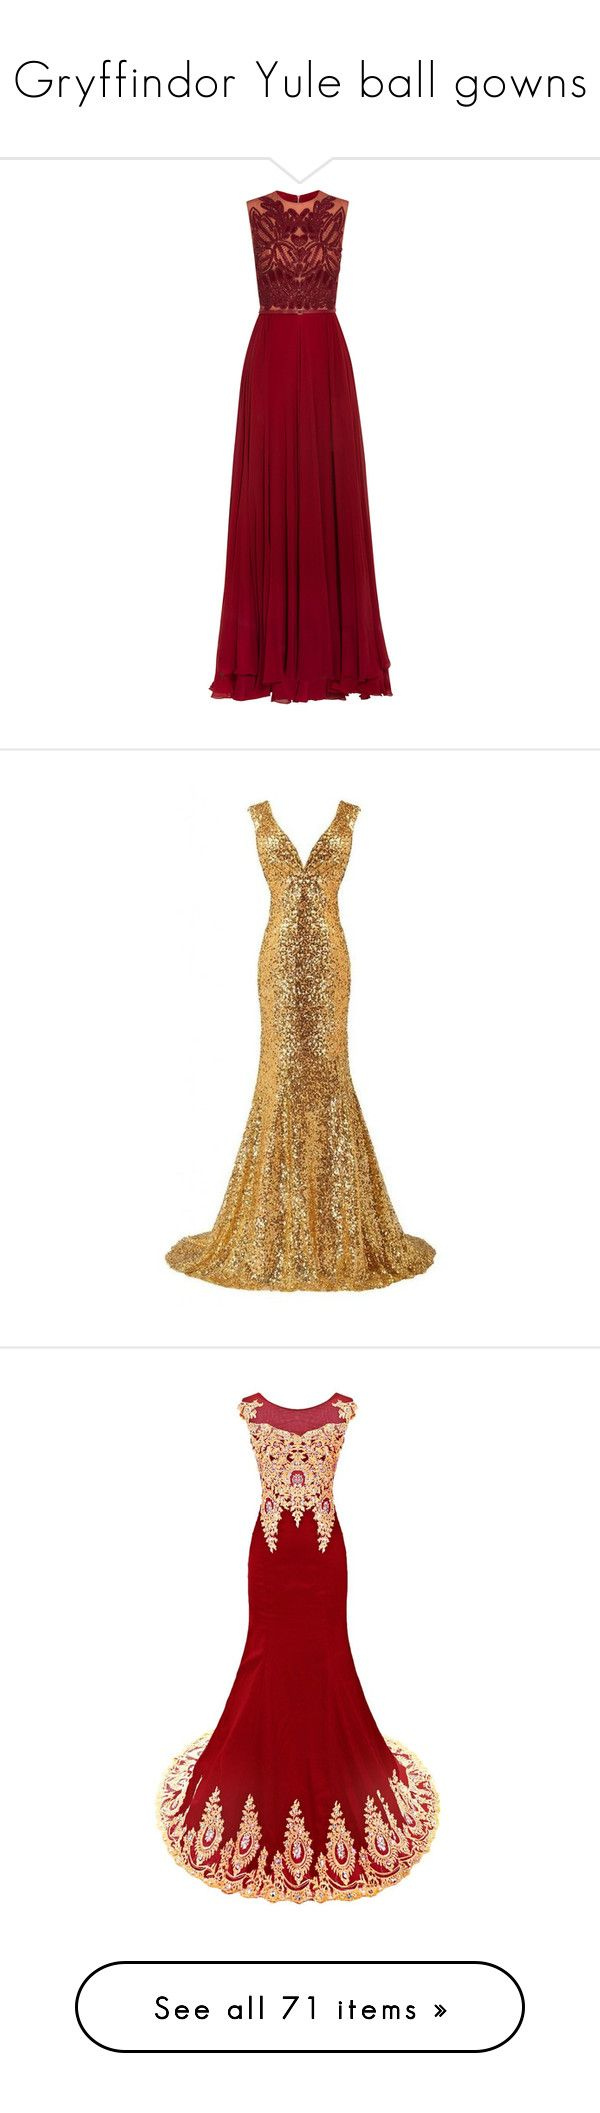 """""""Gryffindor Yule ball gowns"""" by weeby ❤ liked on Polyvore featuring fans, dresses, gowns, red, beaded evening dresses, red sequin dress, red sequin evening gown, sequin gown, red gown and long dresses"""